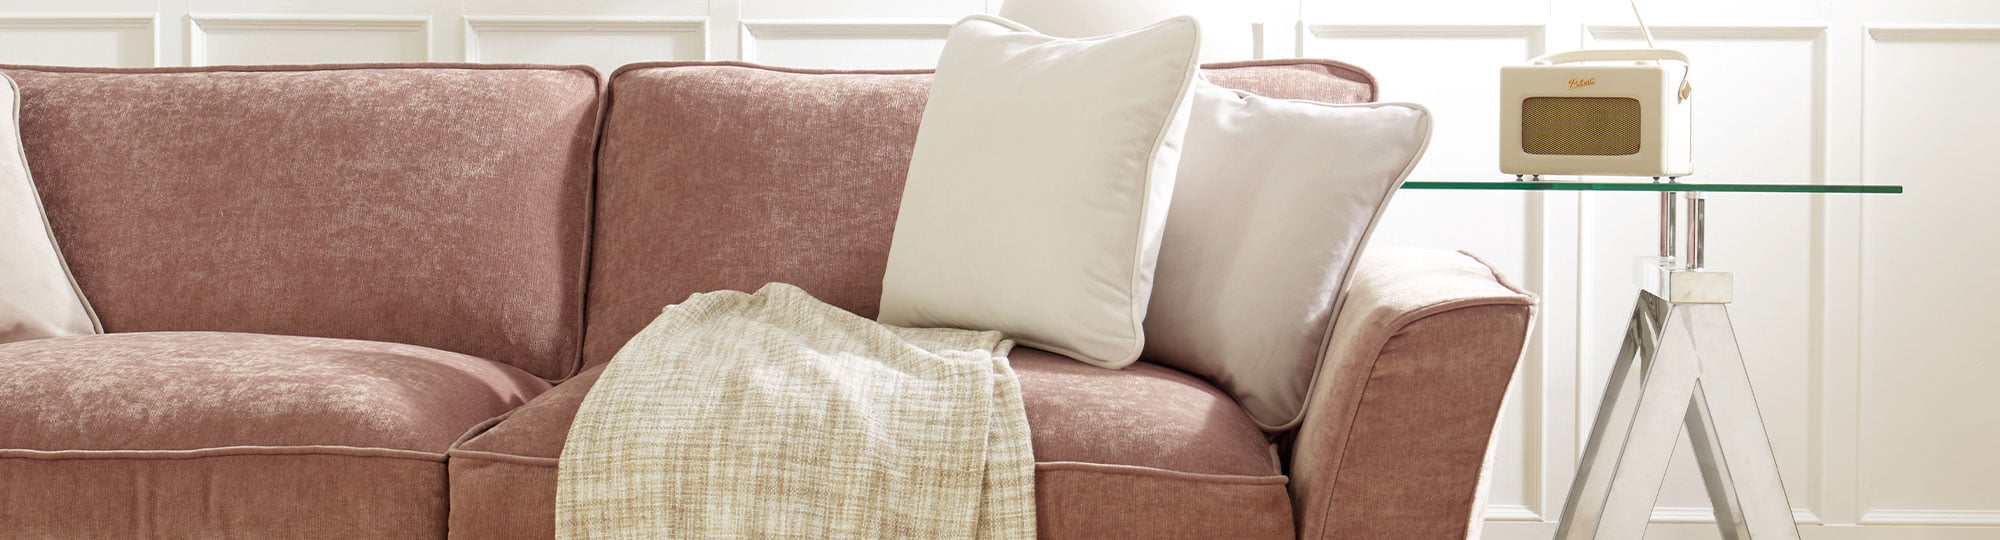 When should I recover my furniture?